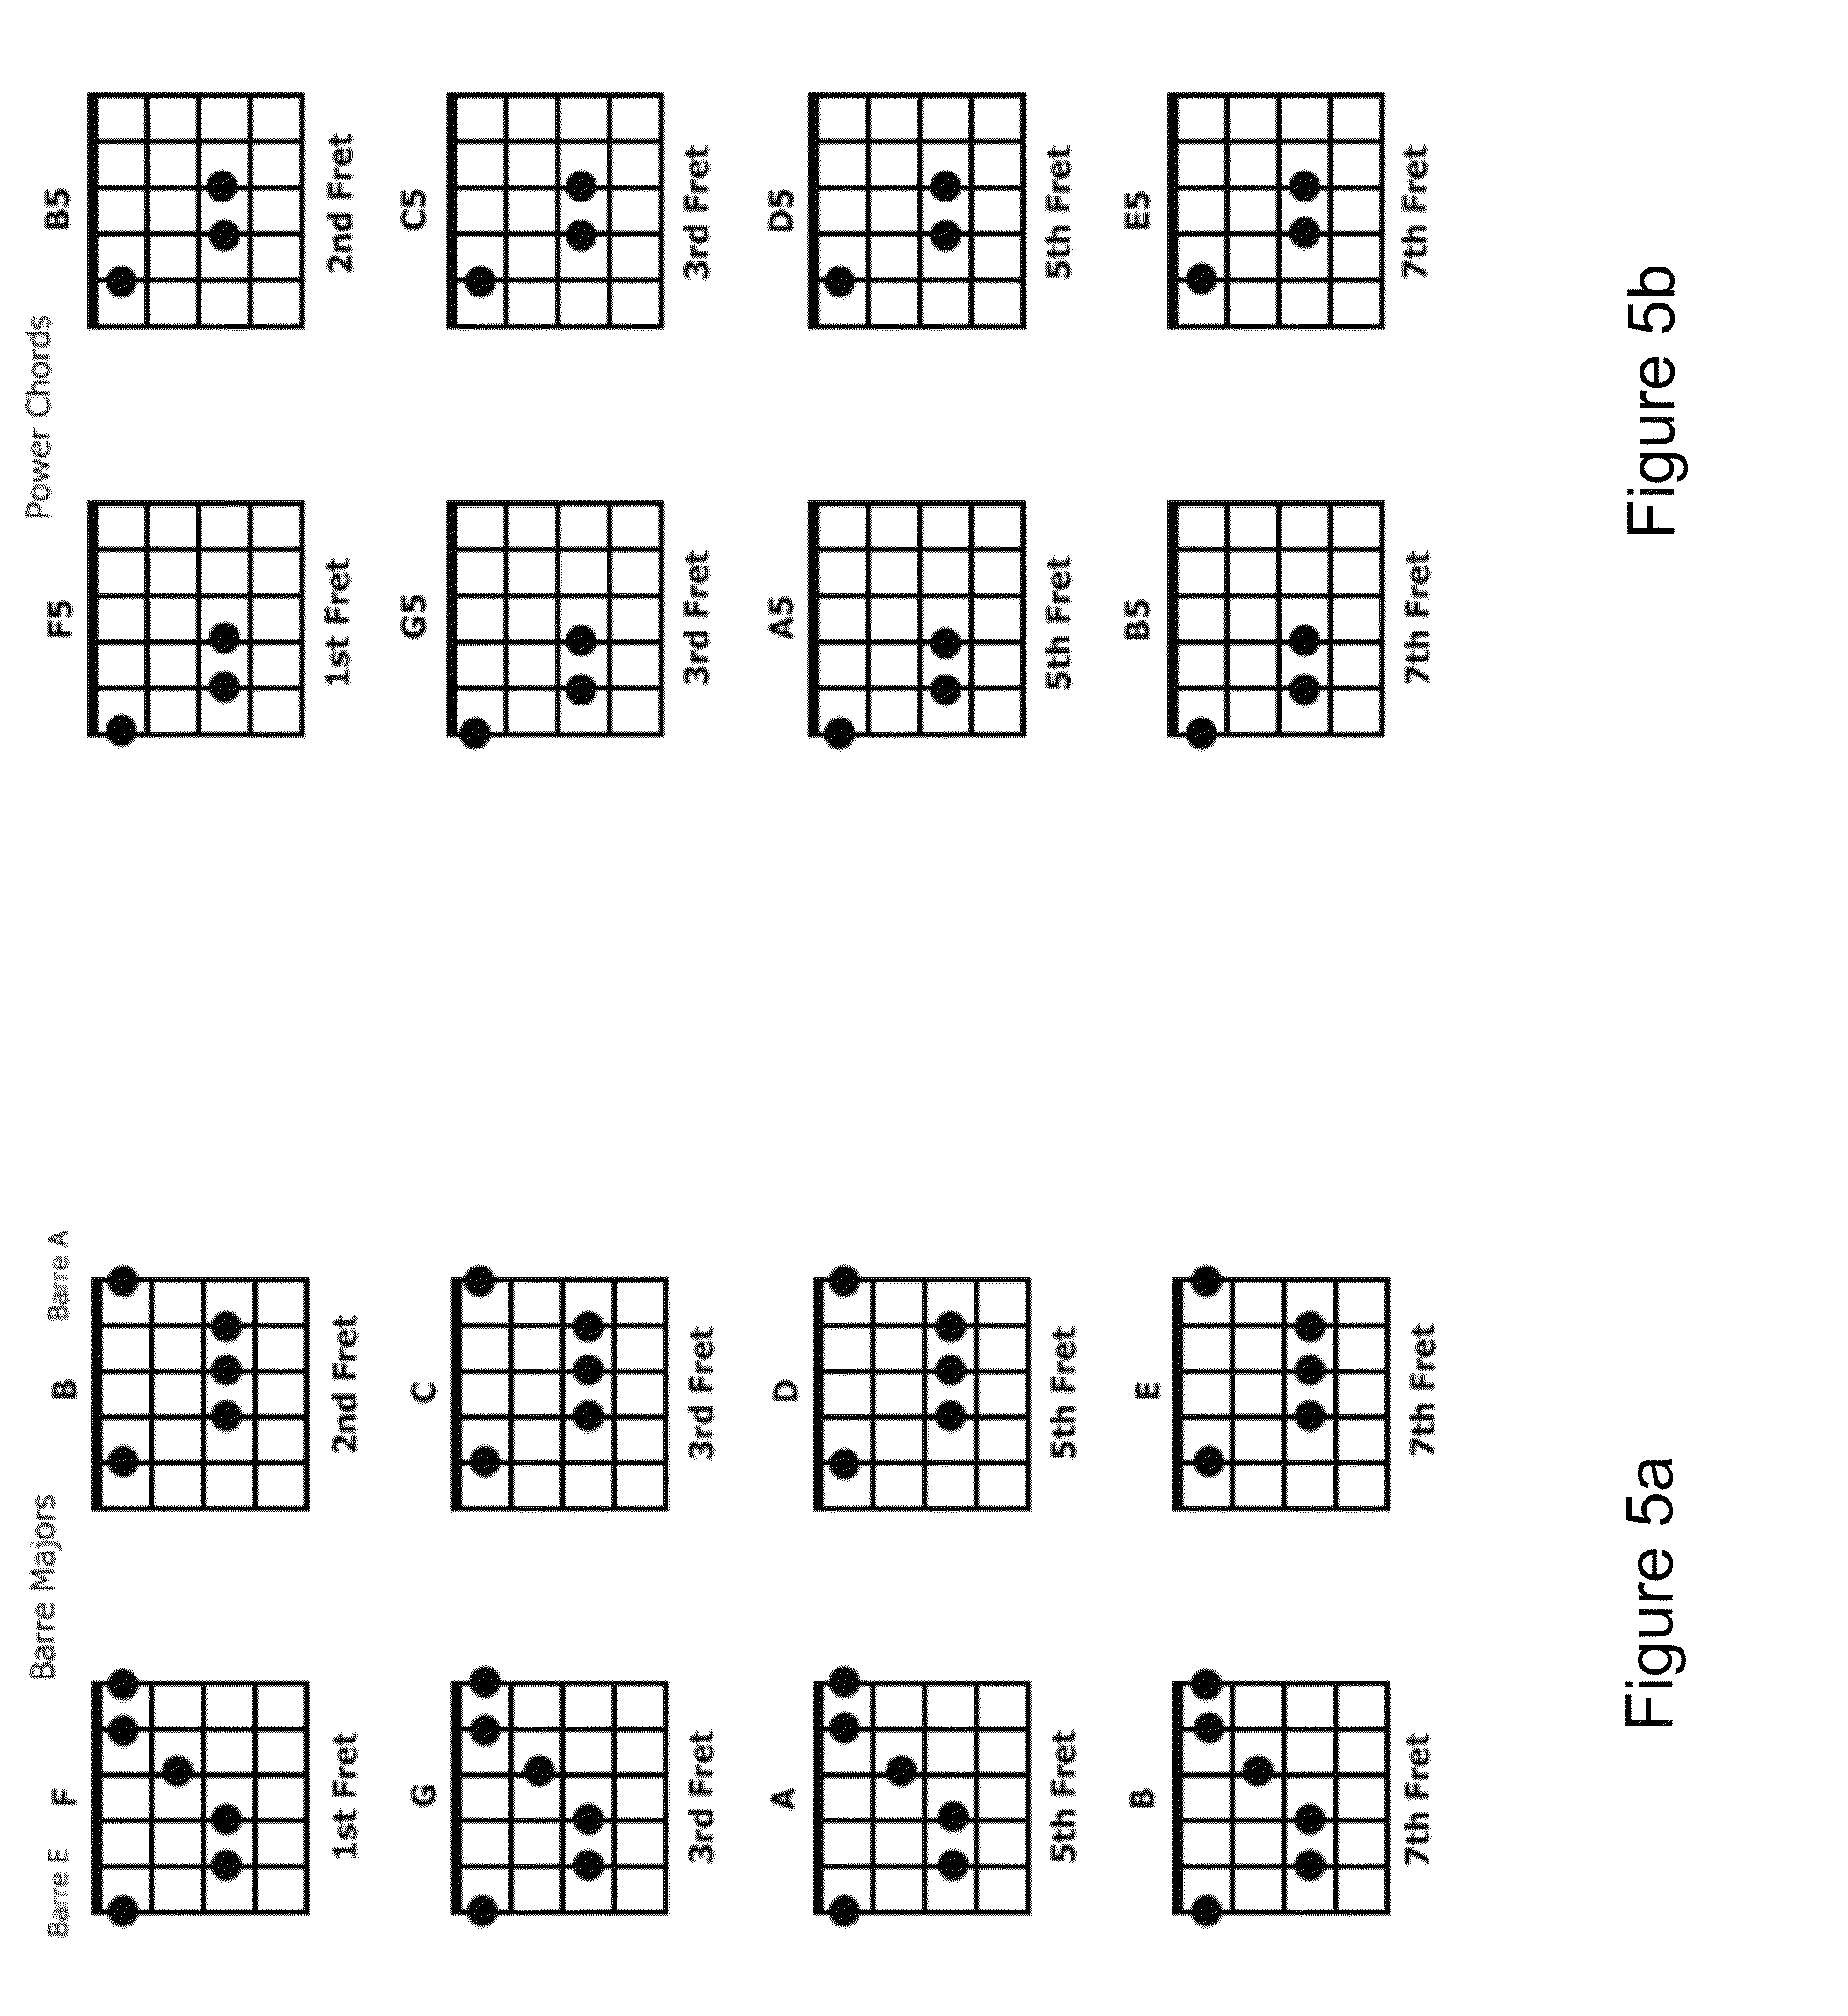 basic guitar chords finger placement